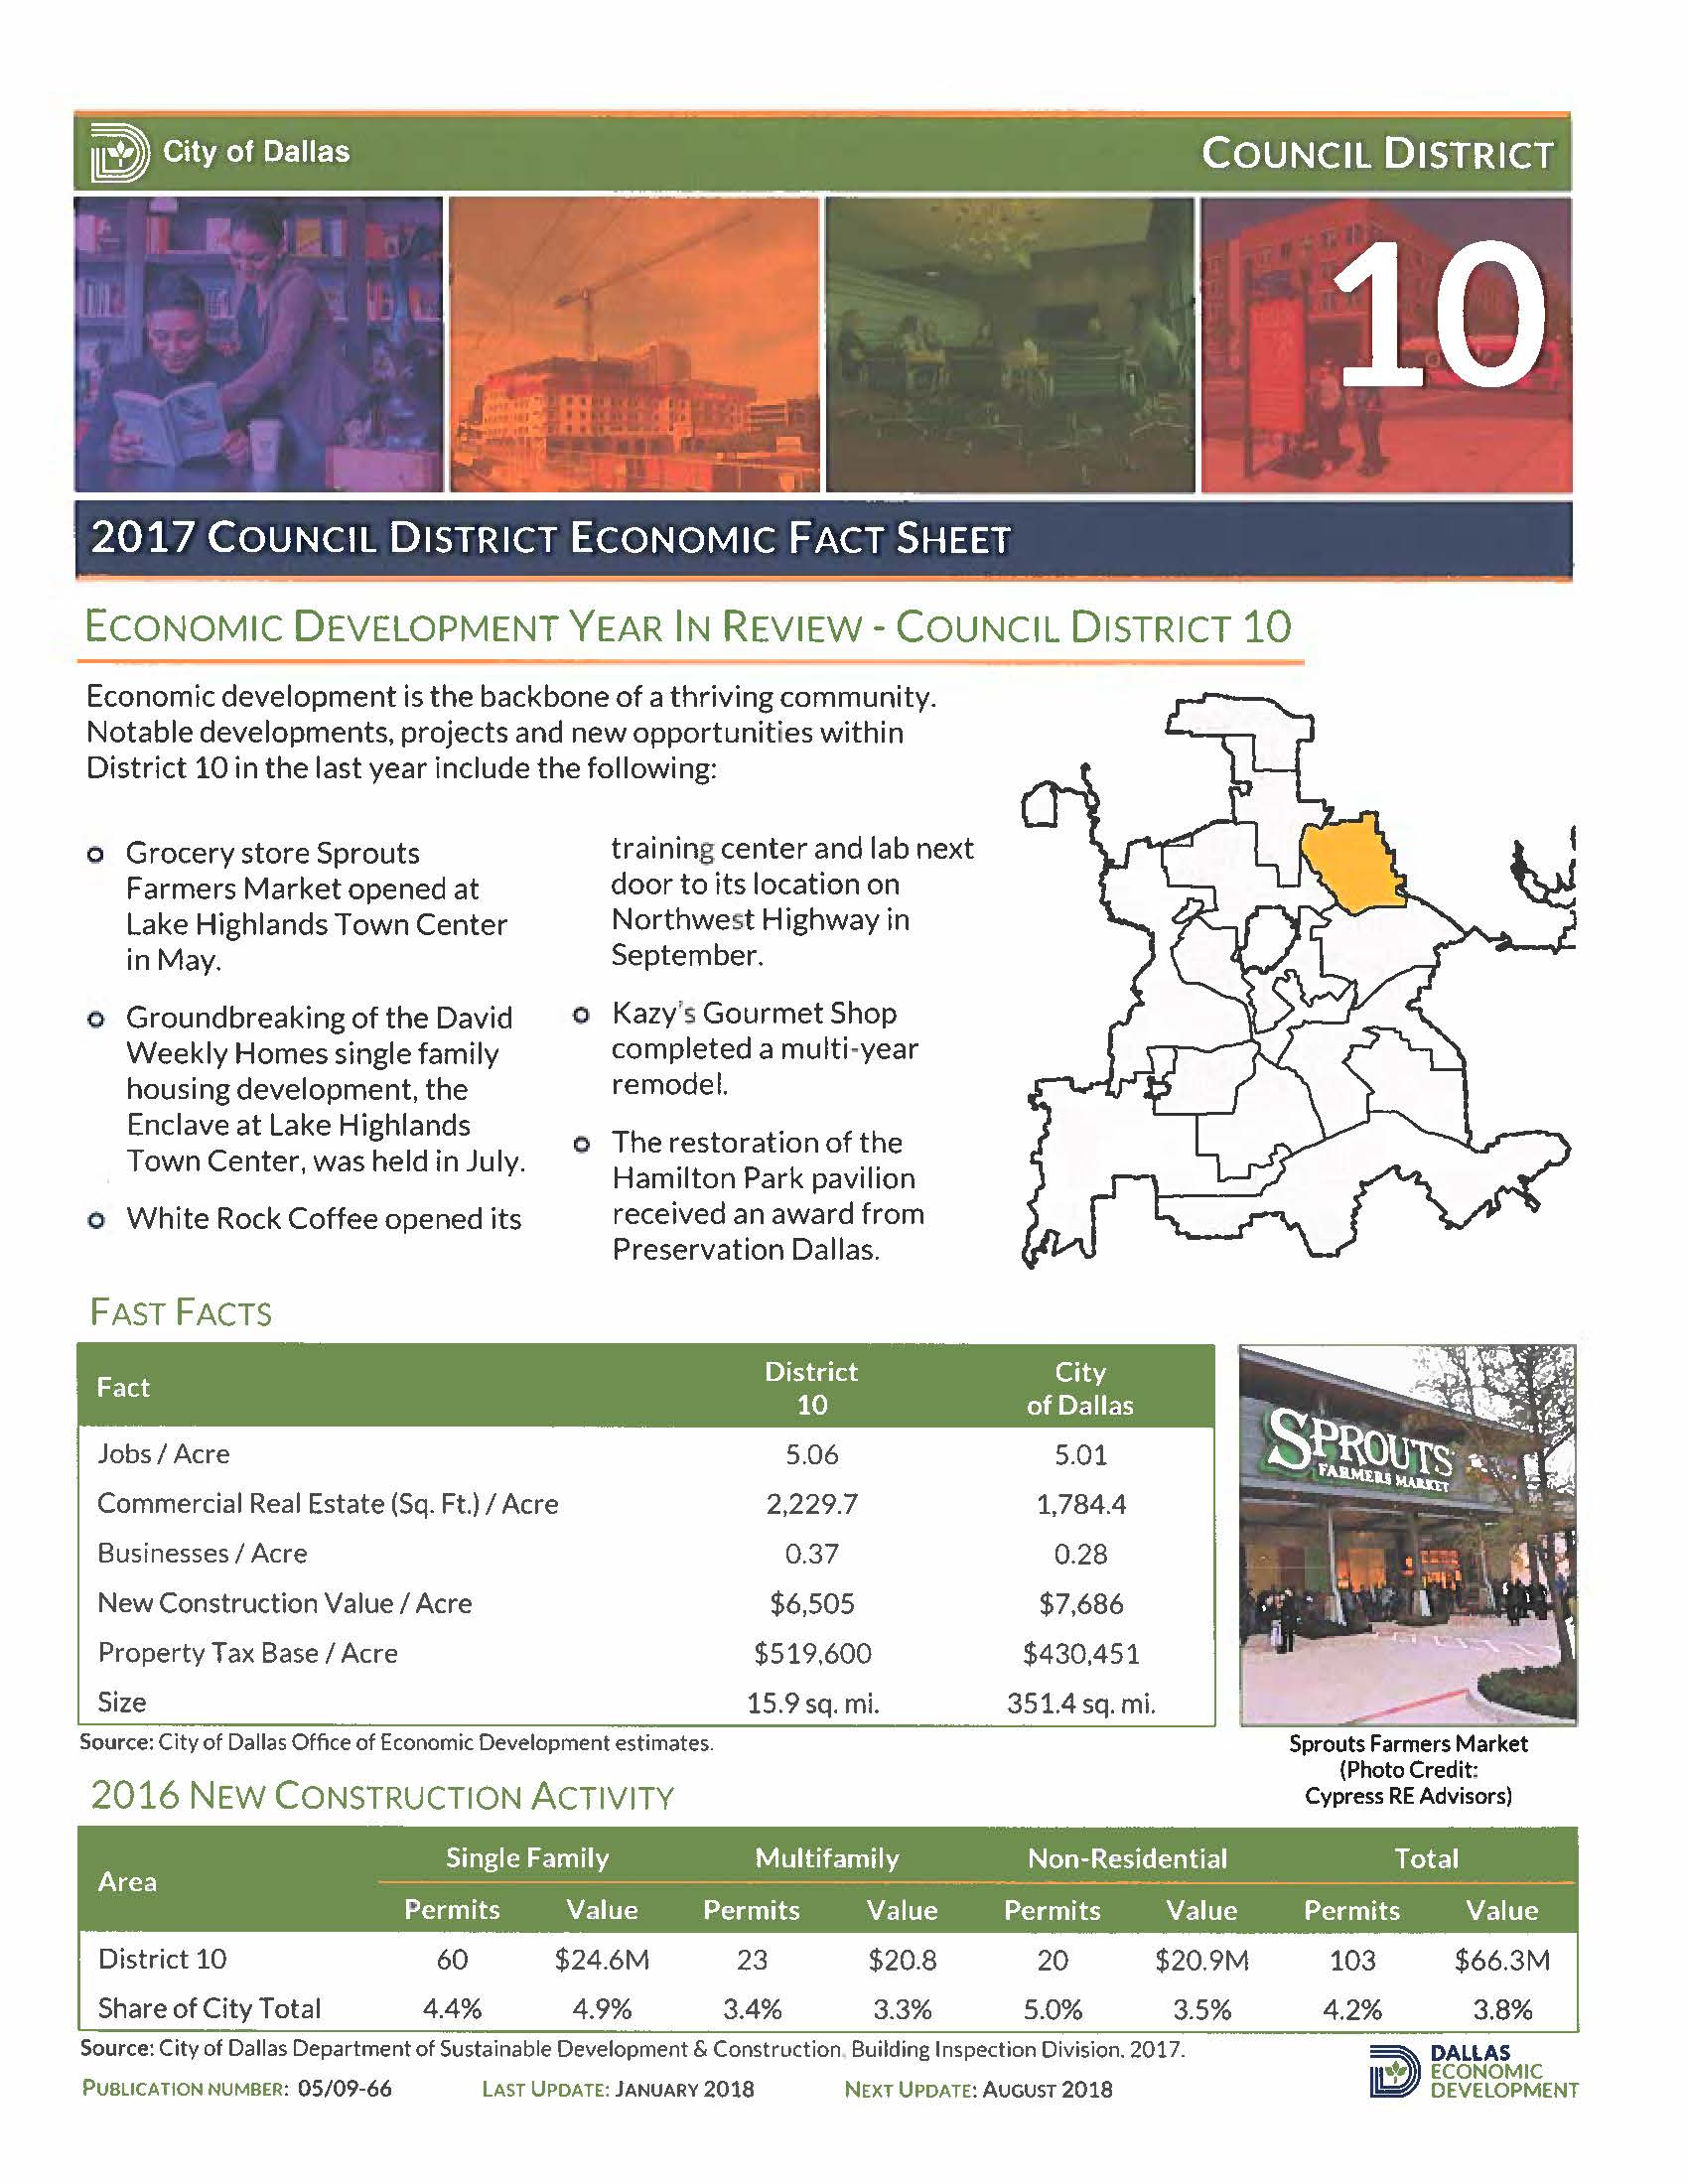 2017 Council District Economic Fact Sheet_Page_1.jpg